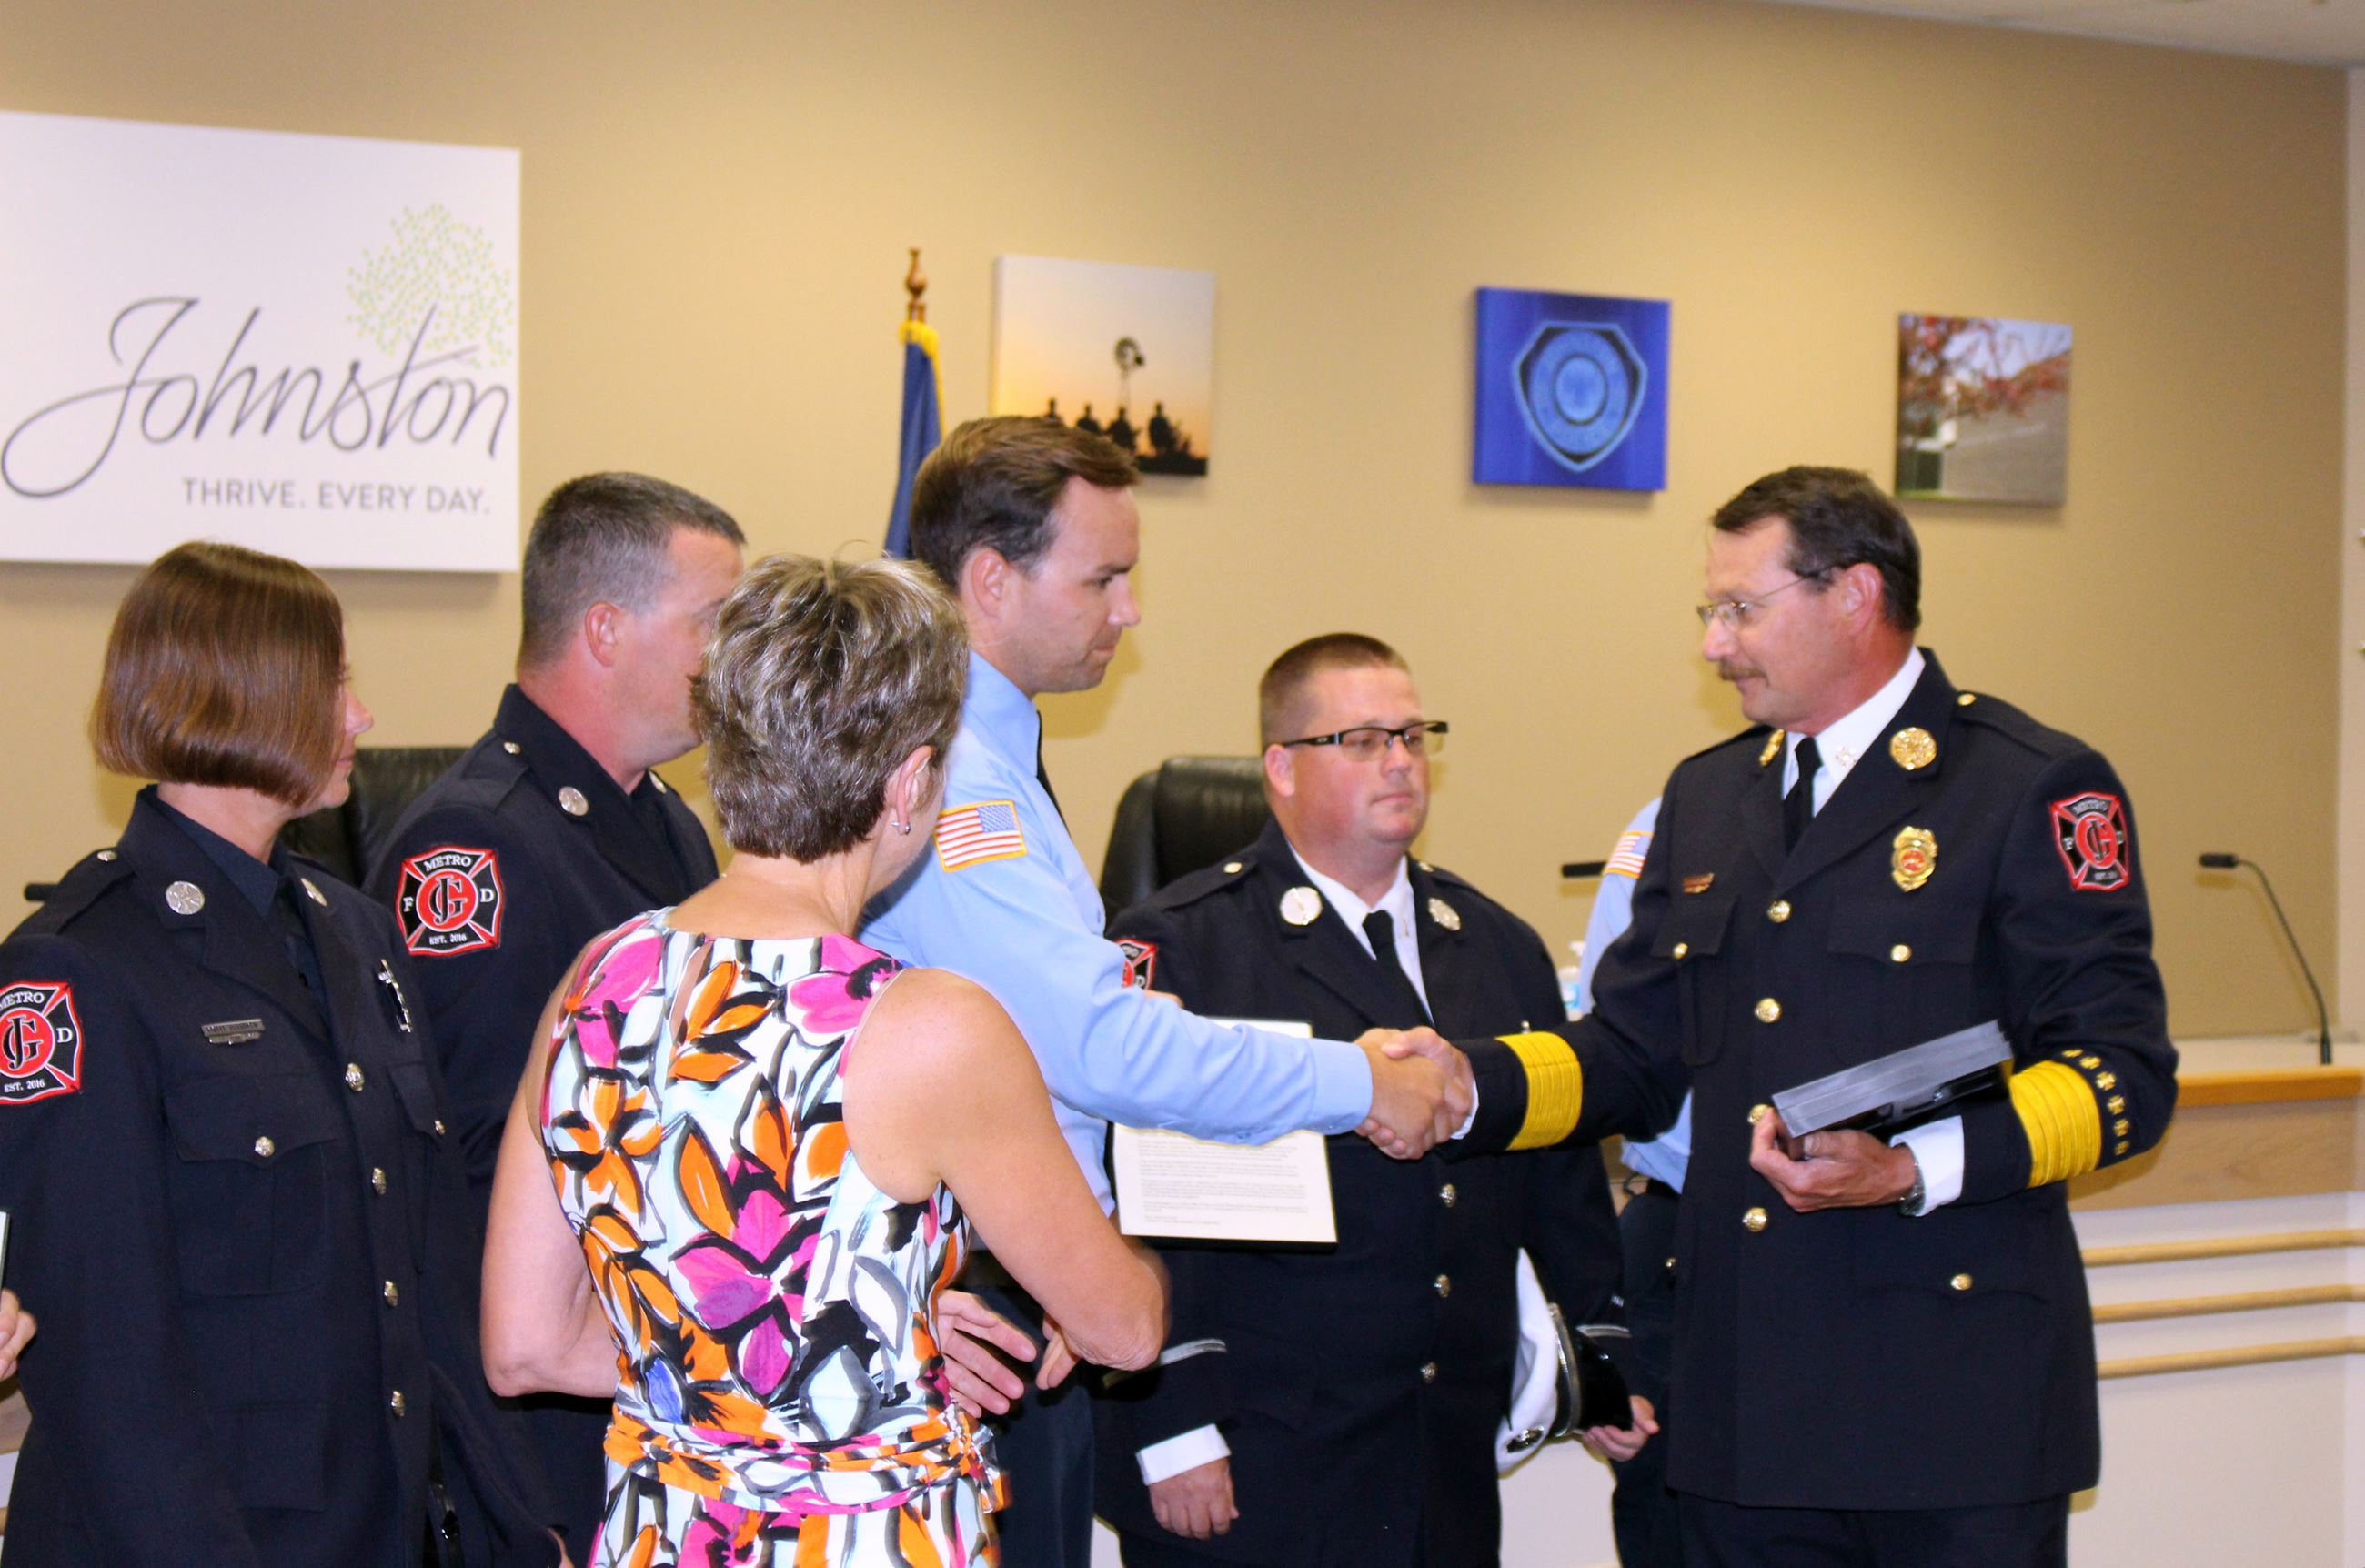 Chief Clark awarding Alex Headley (July 2017)